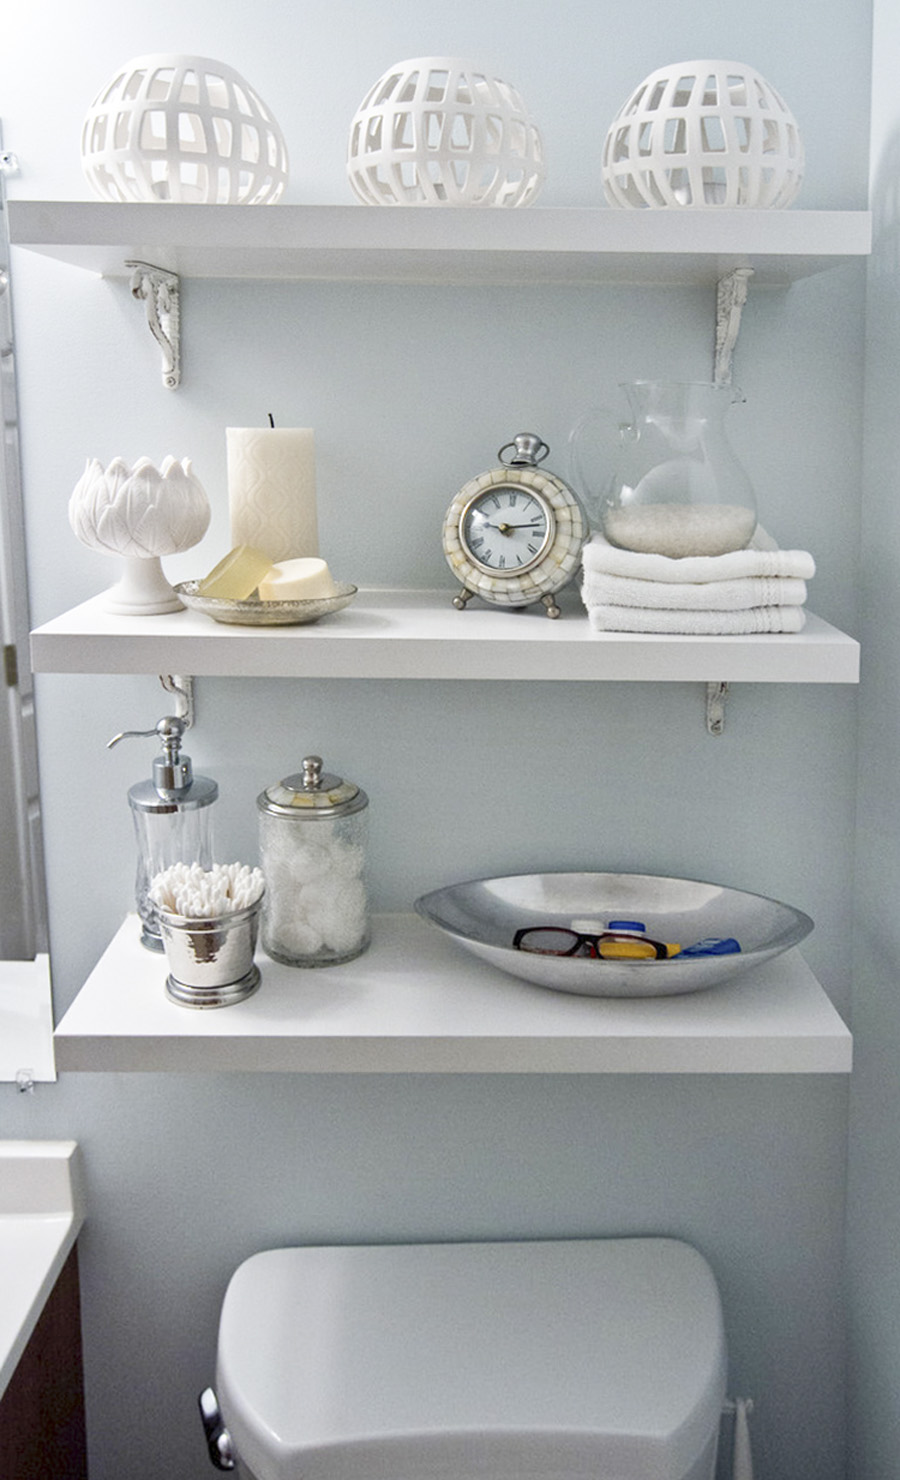 shelf-storage-master-bathroom2.jpg